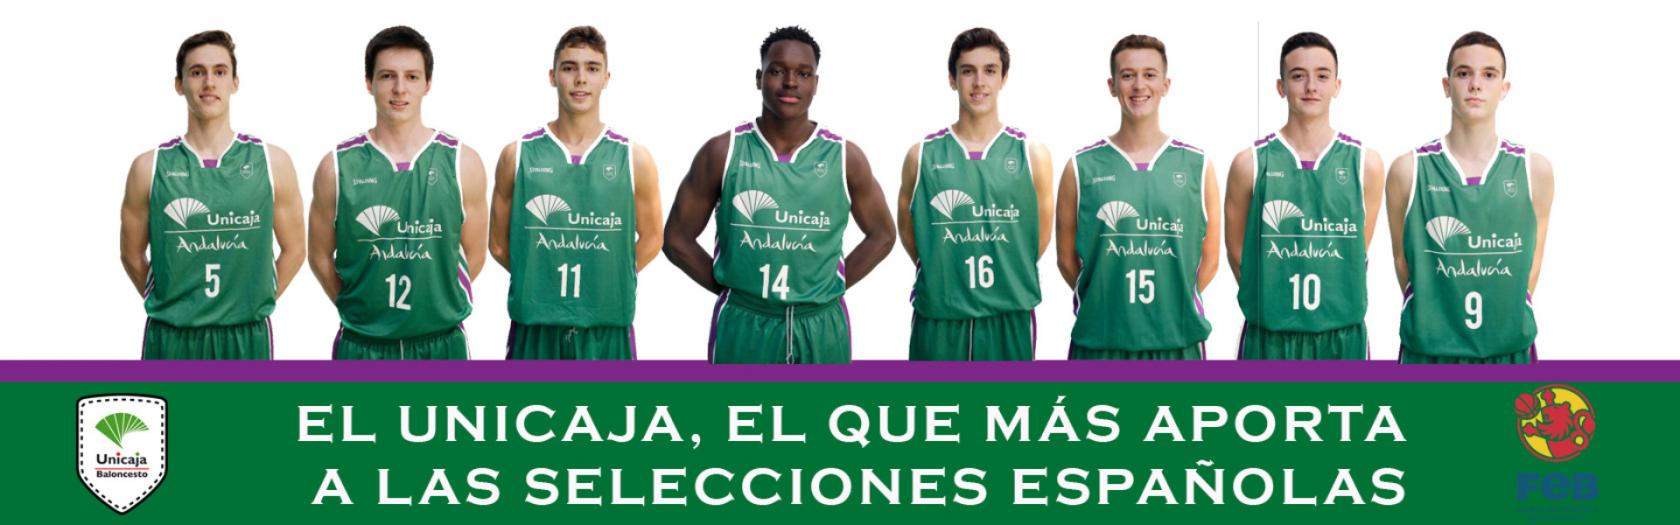 Unicaja the club that has the most players in the Spanish National Teams